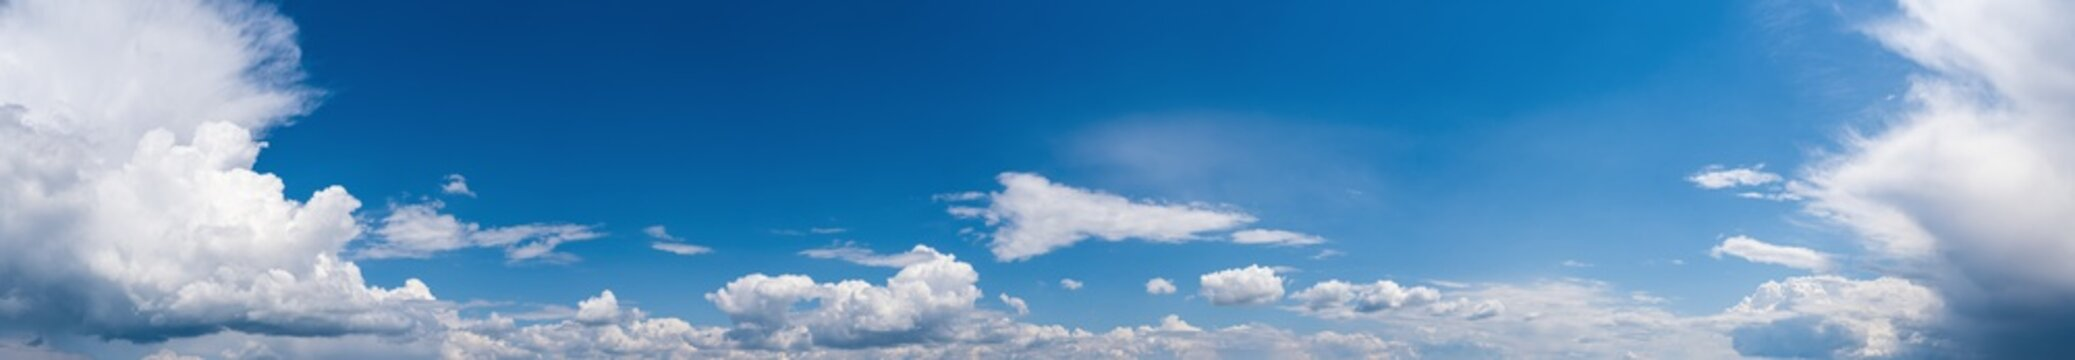 Fuffy clouds in blue sky. Summer good weather skyscape high resolution background.